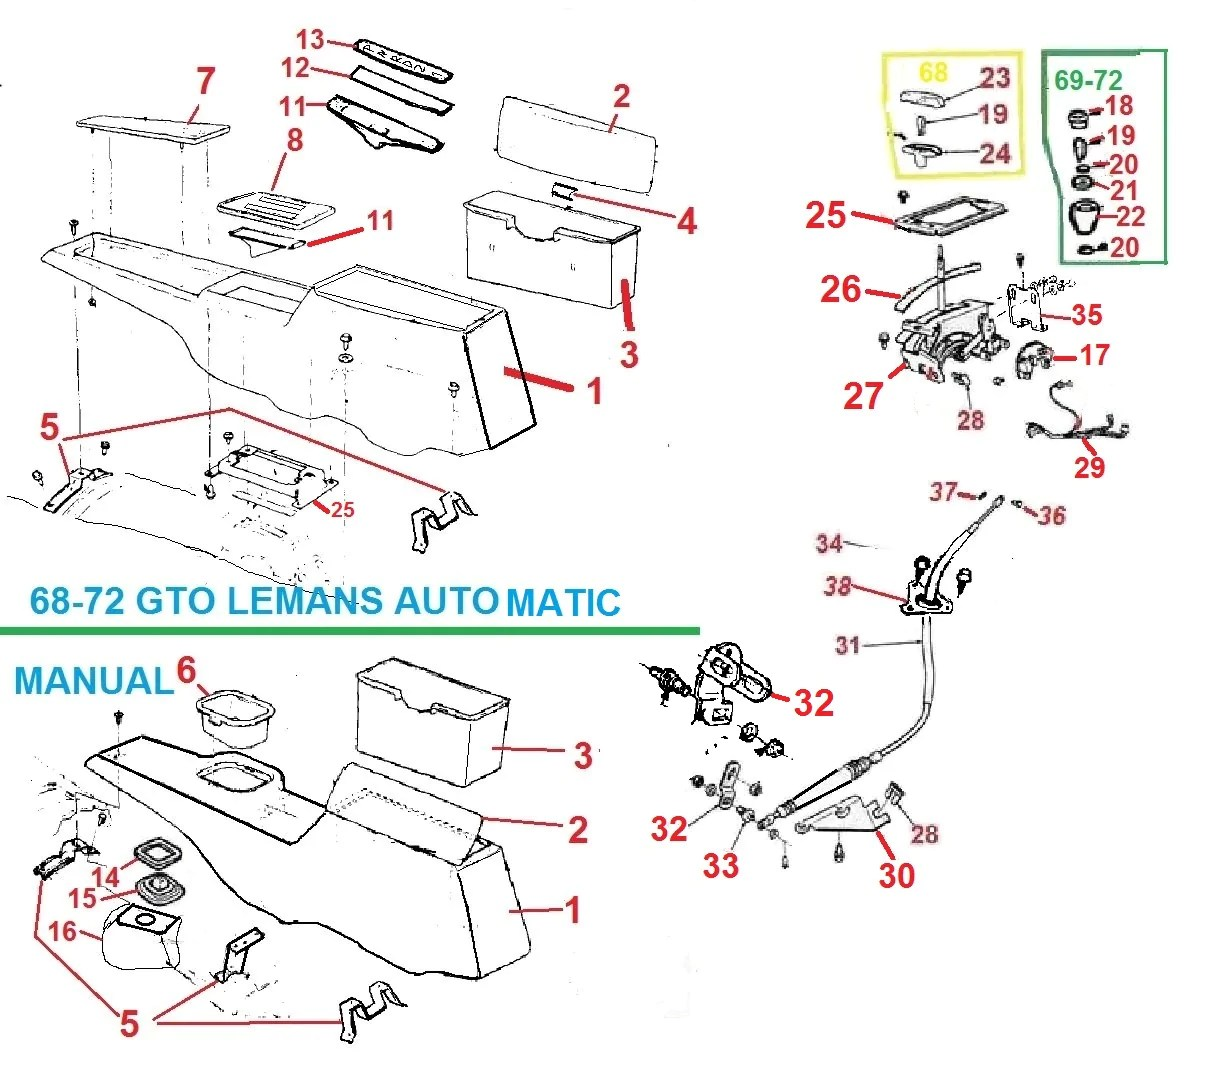 hight resolution of 68 72 gto console parts